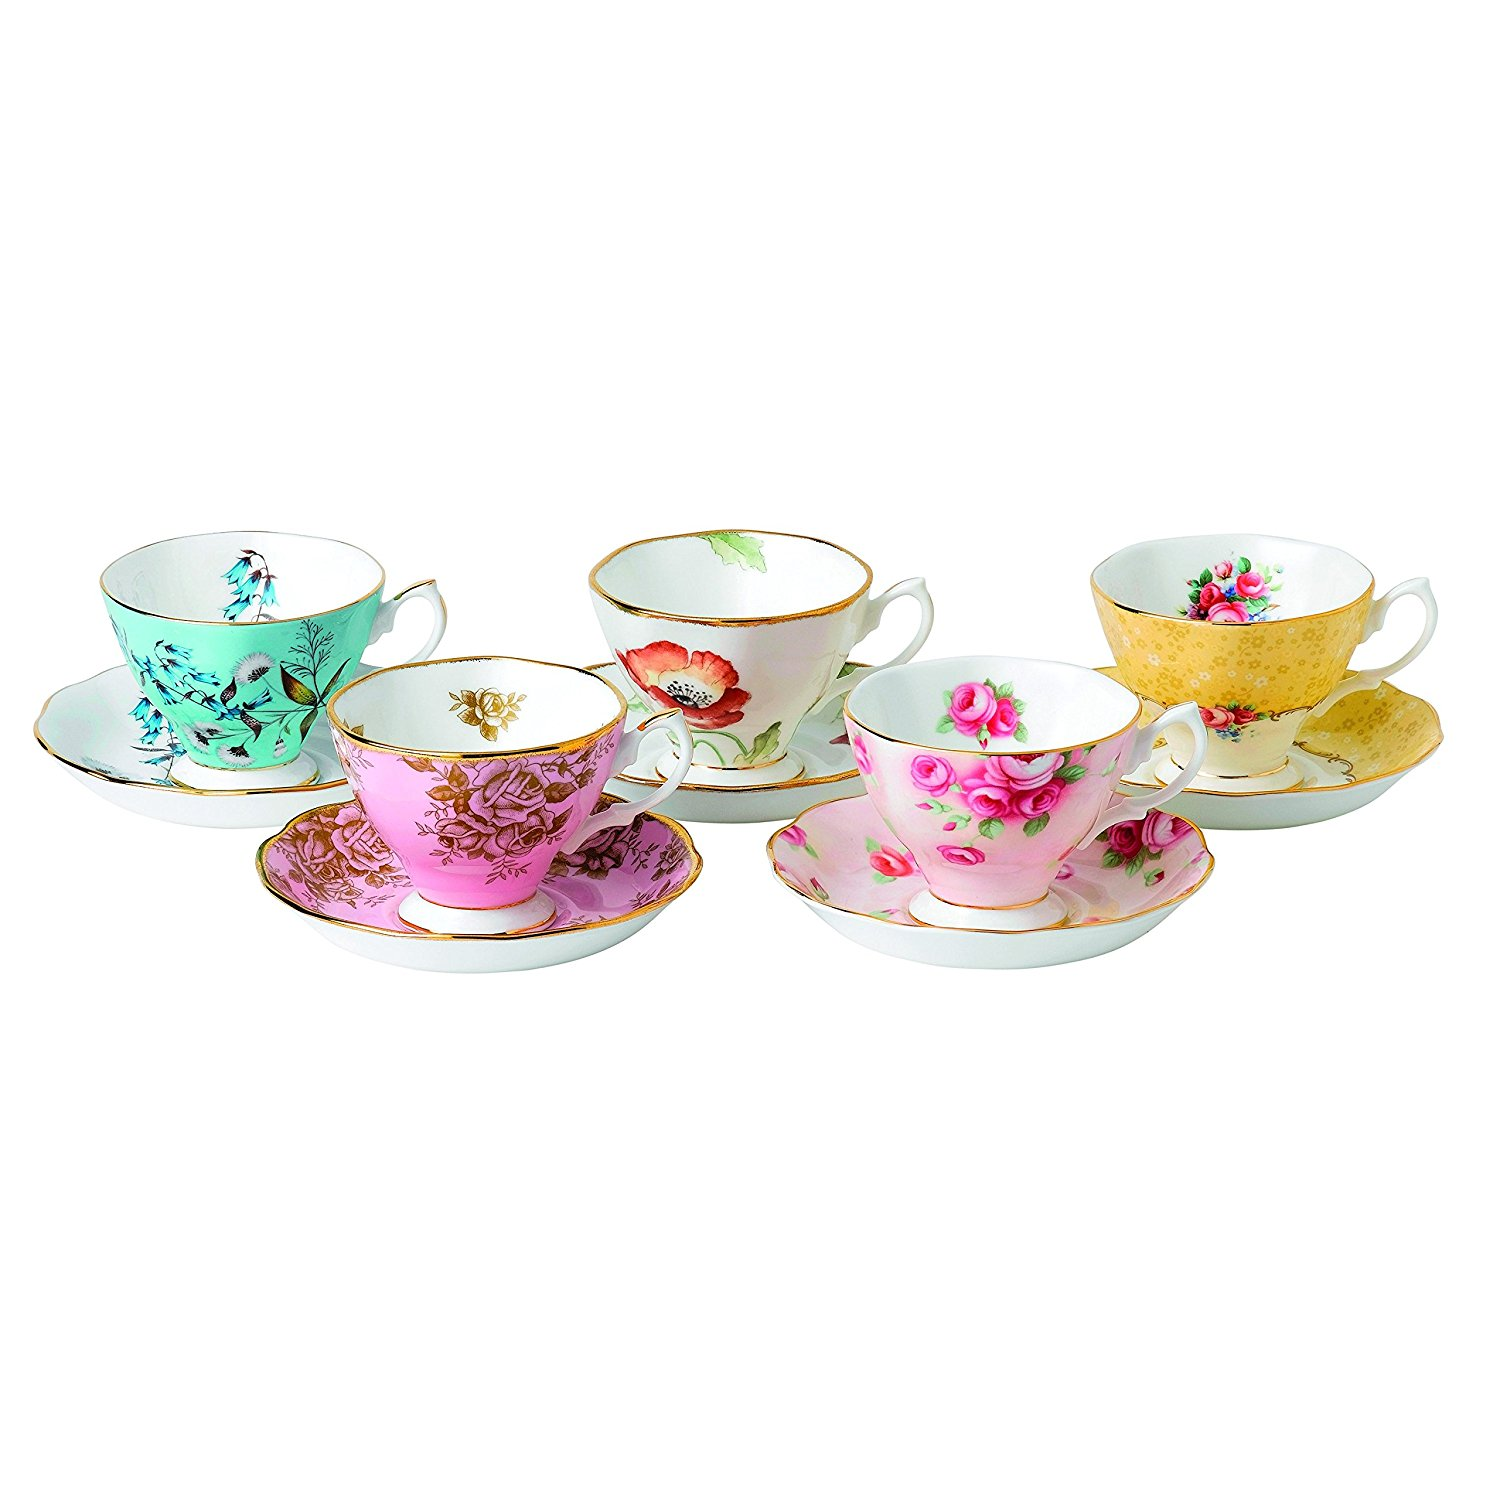 Royal Albert 5 Piece 100 Years 1950-1990 Teacup & Saucer Set, Multicolor